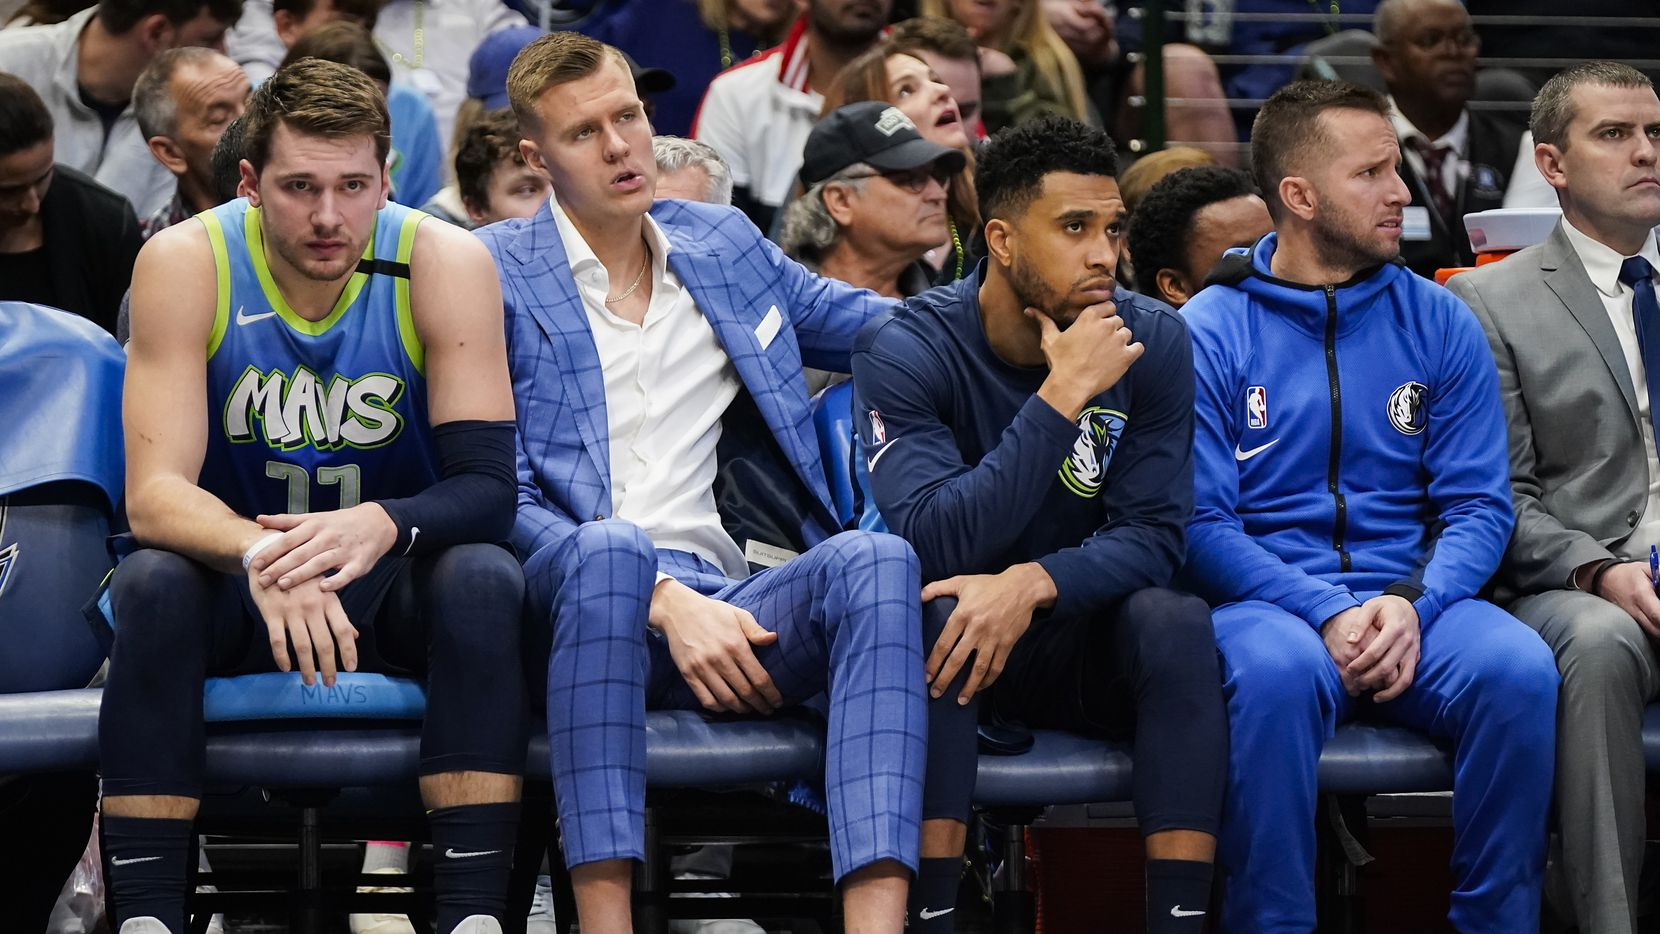 Dallas Mavericks guard Luka Doncic (left) and injured Kristaps Porzingis watch from the bench during the first half of an NBA basketball game against the Los Angeles Lakers at American Airlines Center on Friday, Jan. 10, 2020, in Dallas.